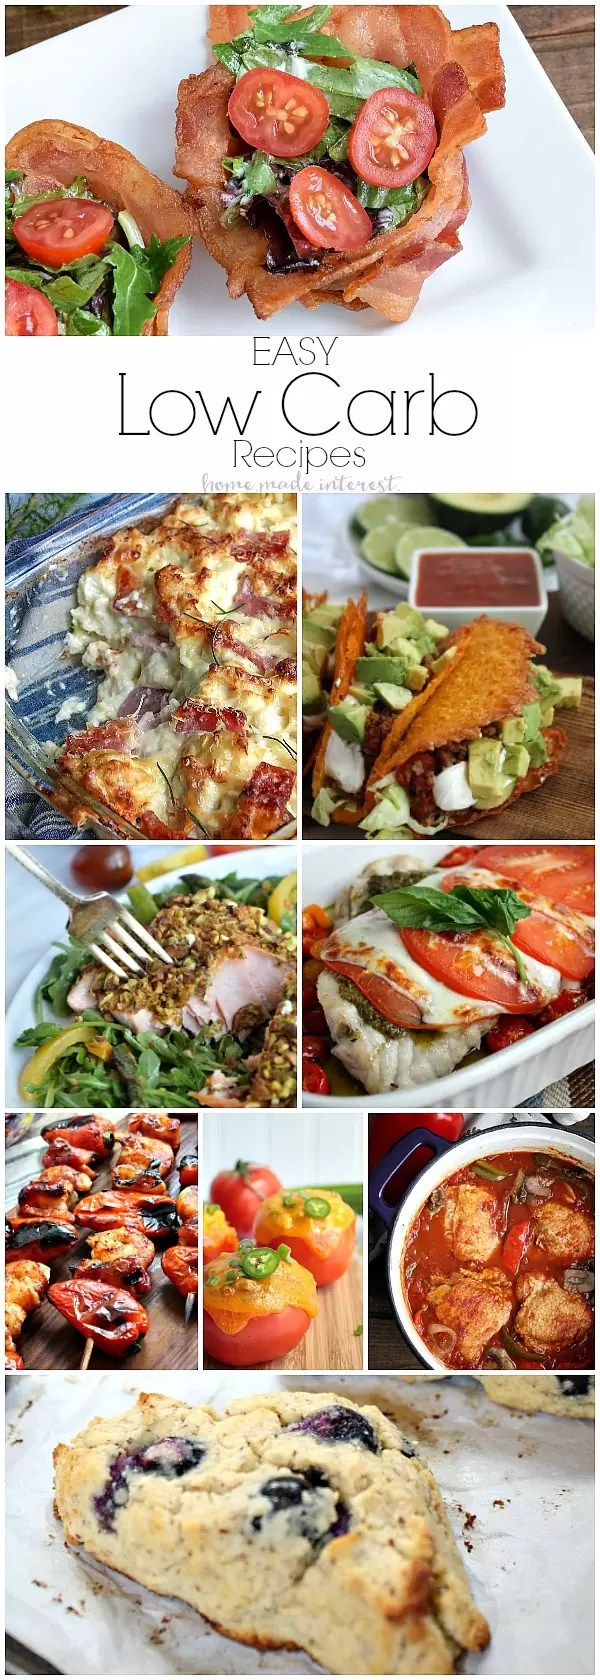 These easy low carb recipes and low carb substitutions make eating low carb simple. We have healthy low carb recipes for people on Atkins diet, Ketogenic diet, LCHF diet, whatever kind of low carb diet that is out there. These low carb recipes are must-try low carb dinner and low carb lunch recipes!